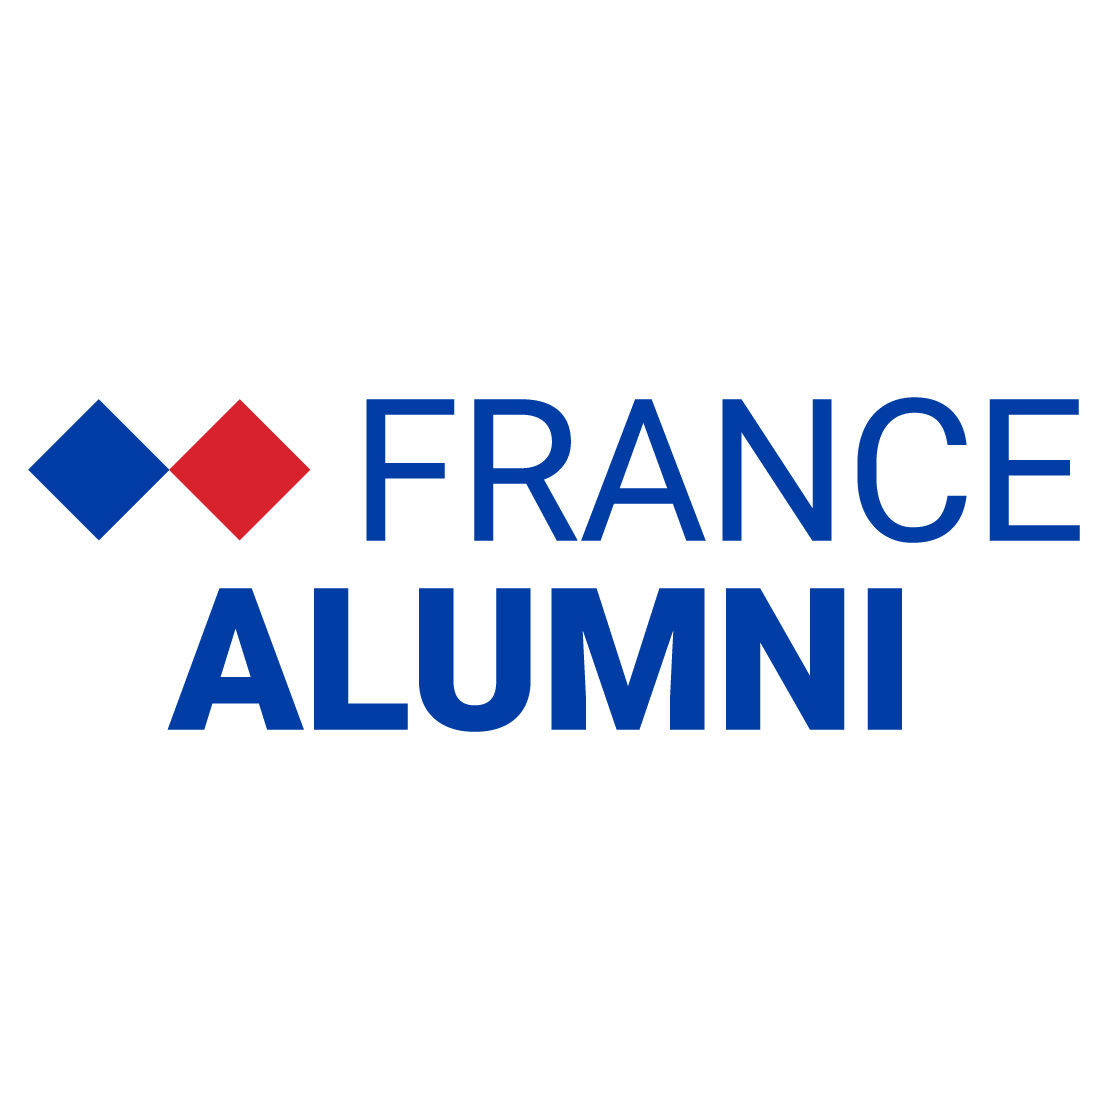 Join the France Alumni network | Campus France